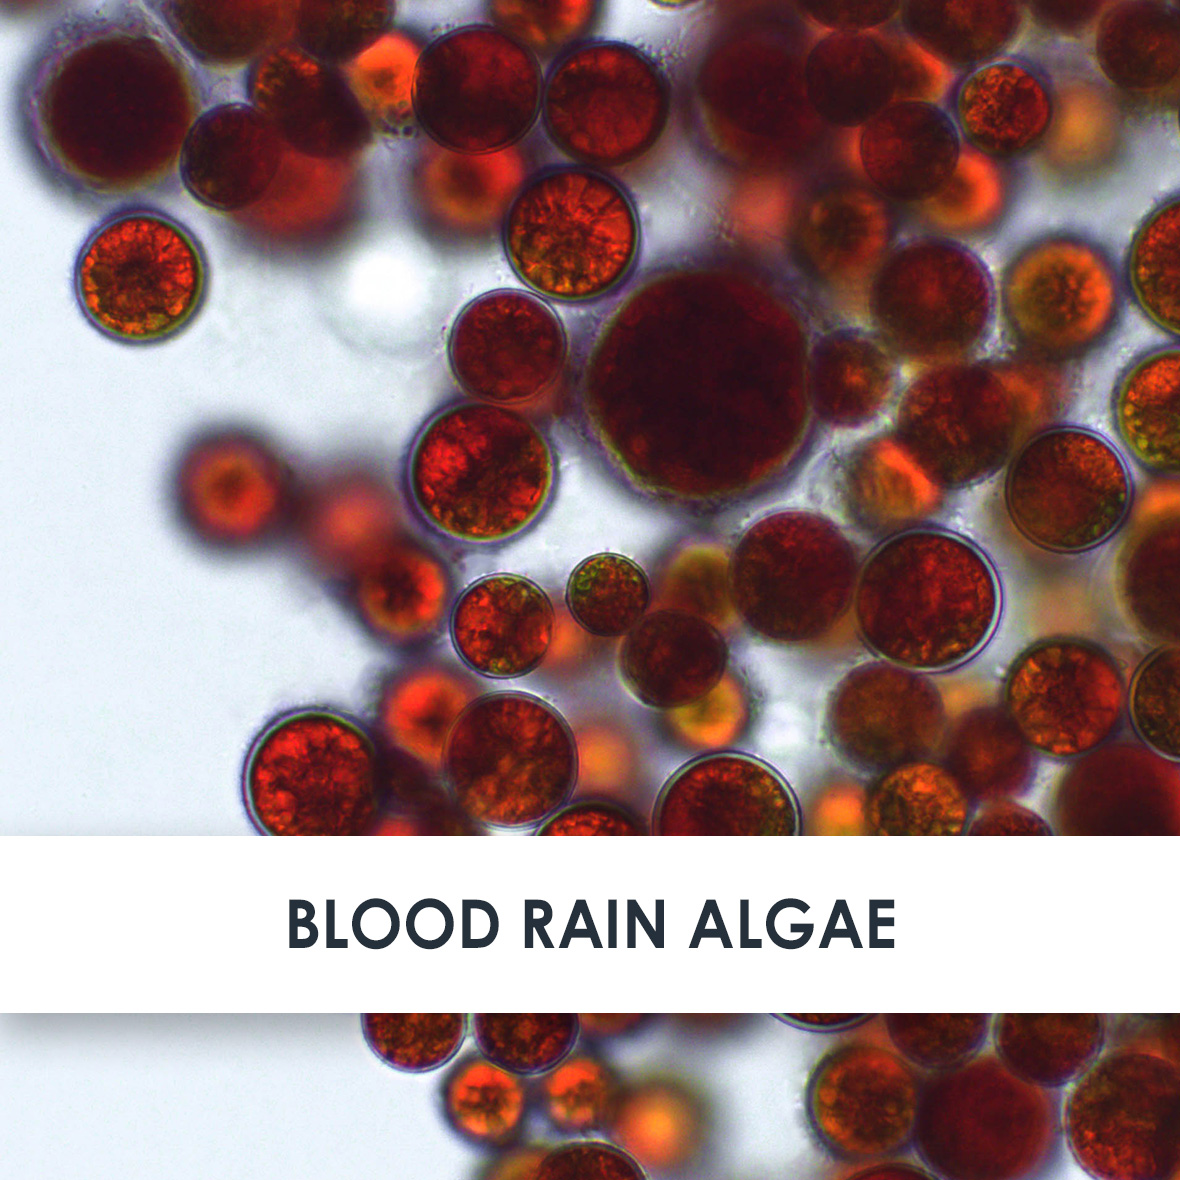 Blood Rain Algae Skincare Benefits